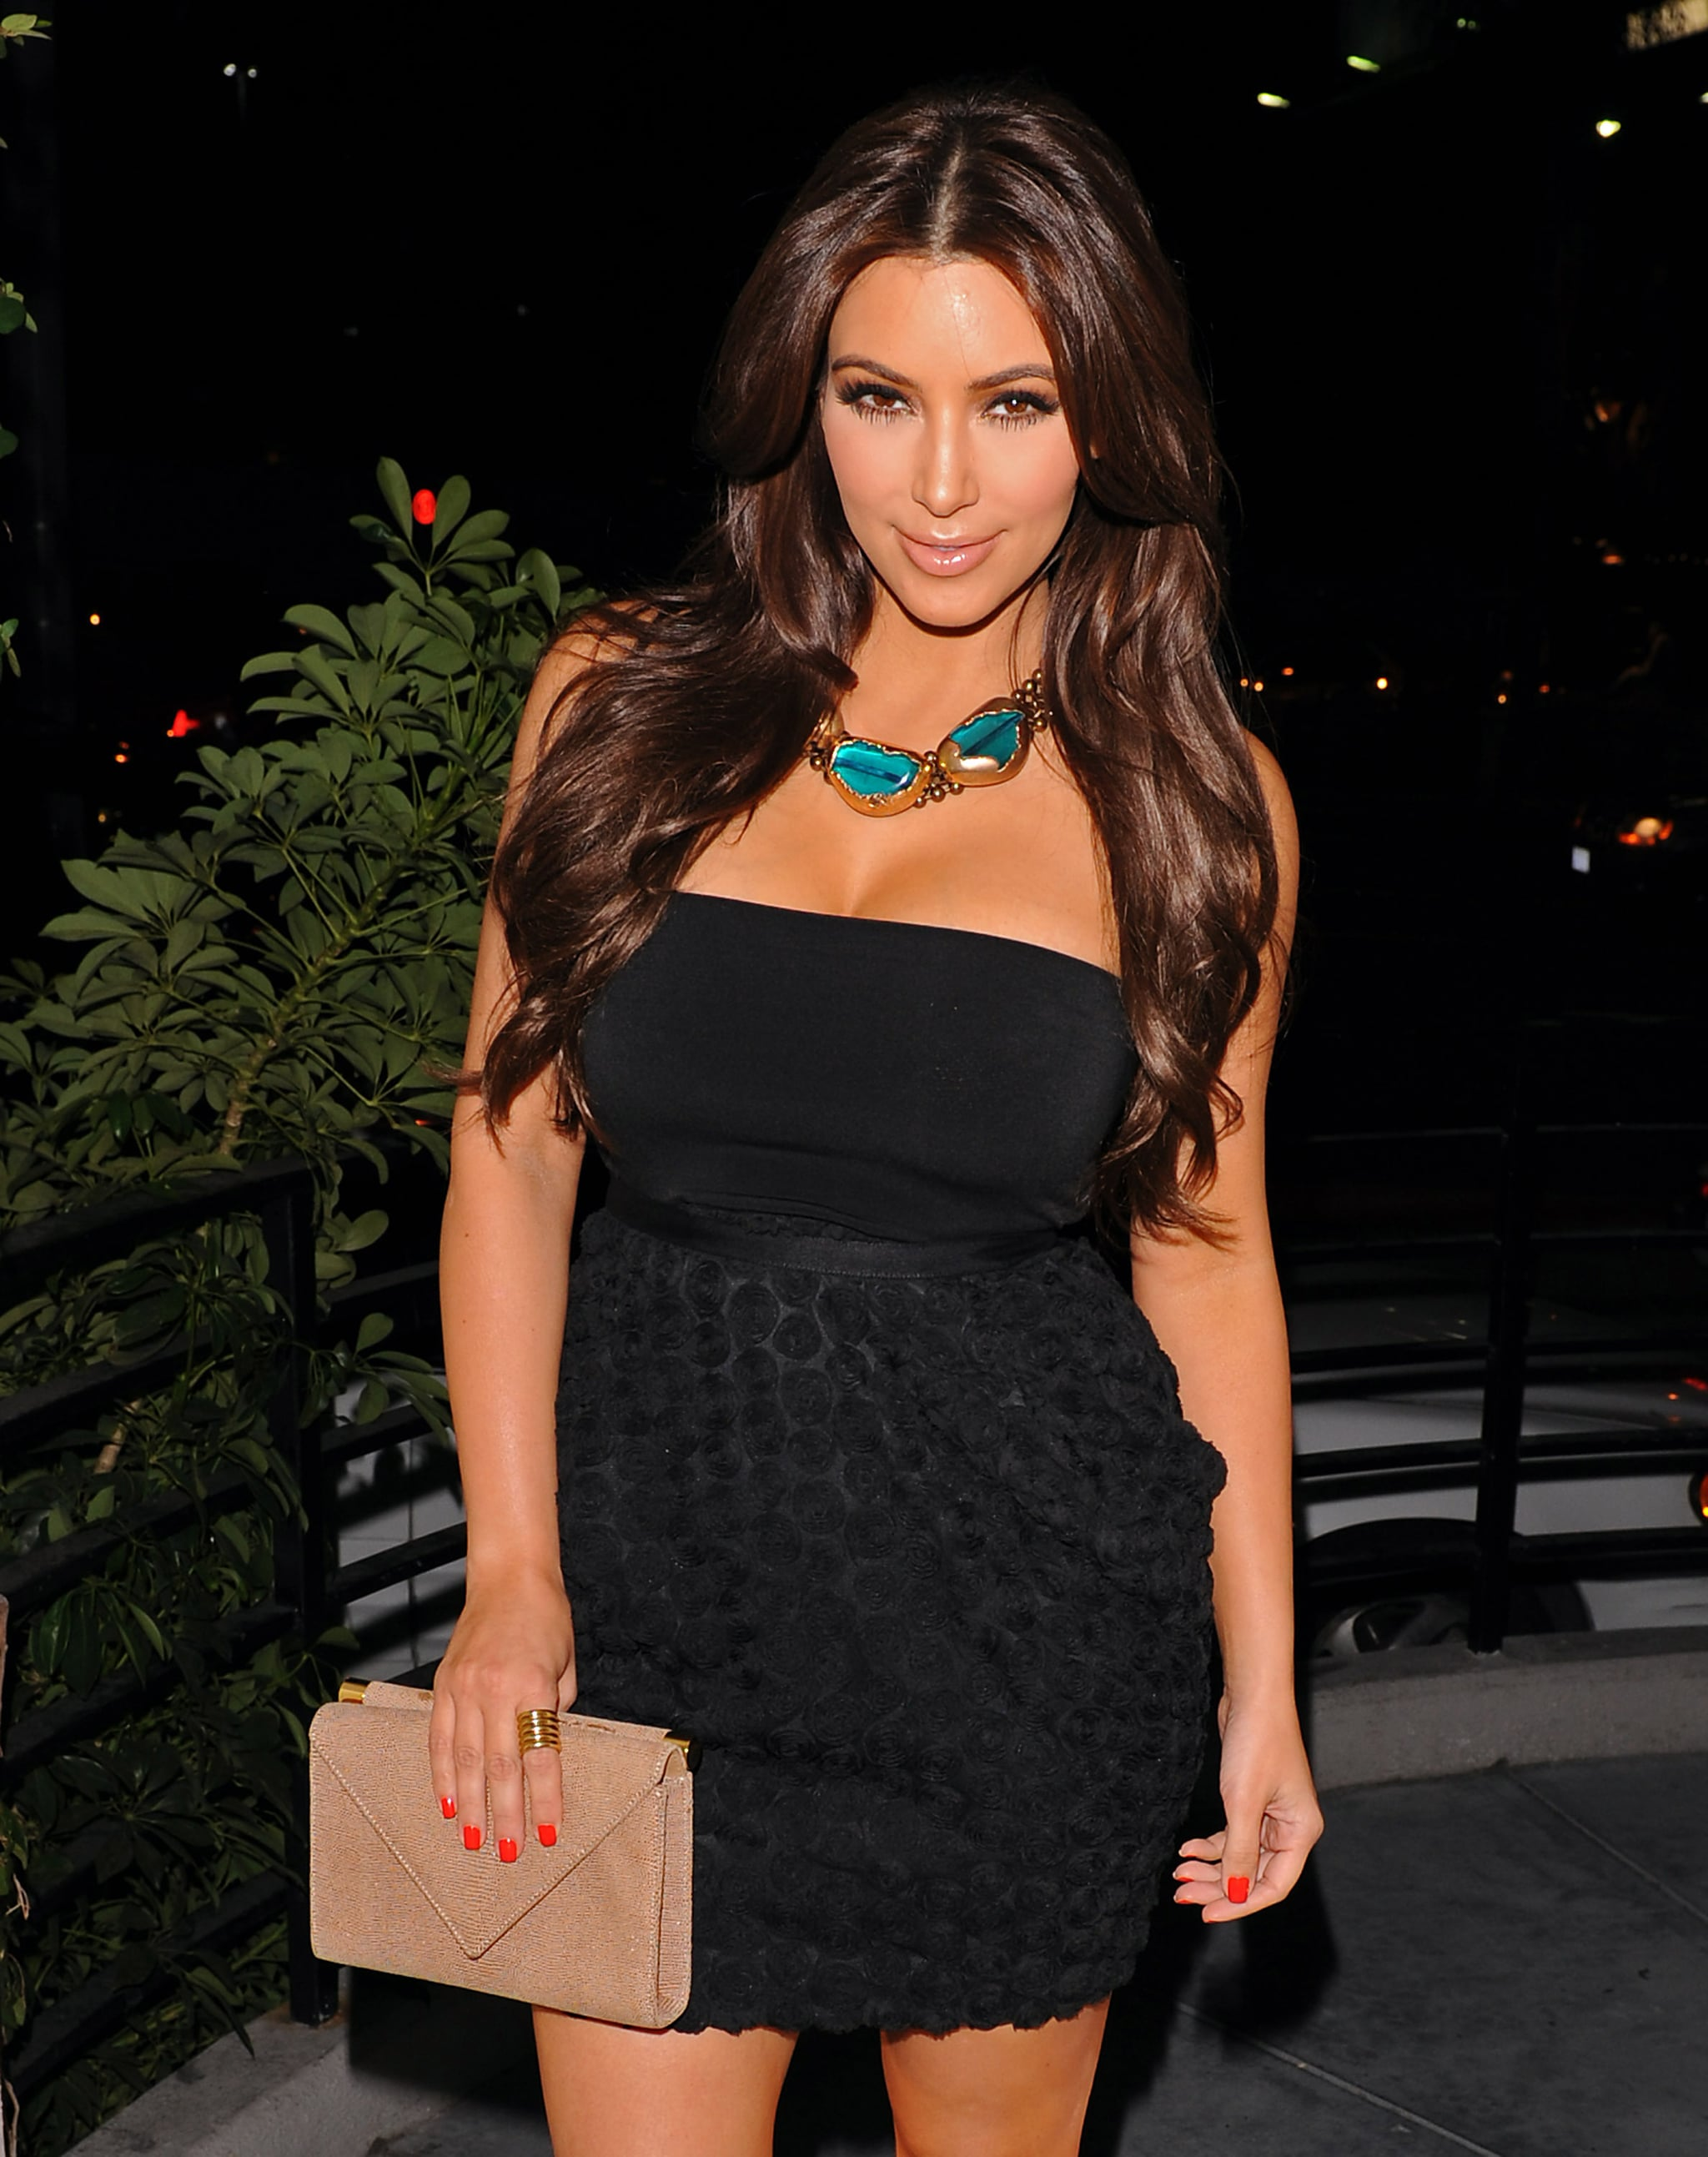 Pictures of Kim Kardashian and Fiance Kris Humphries Holding Hands ...